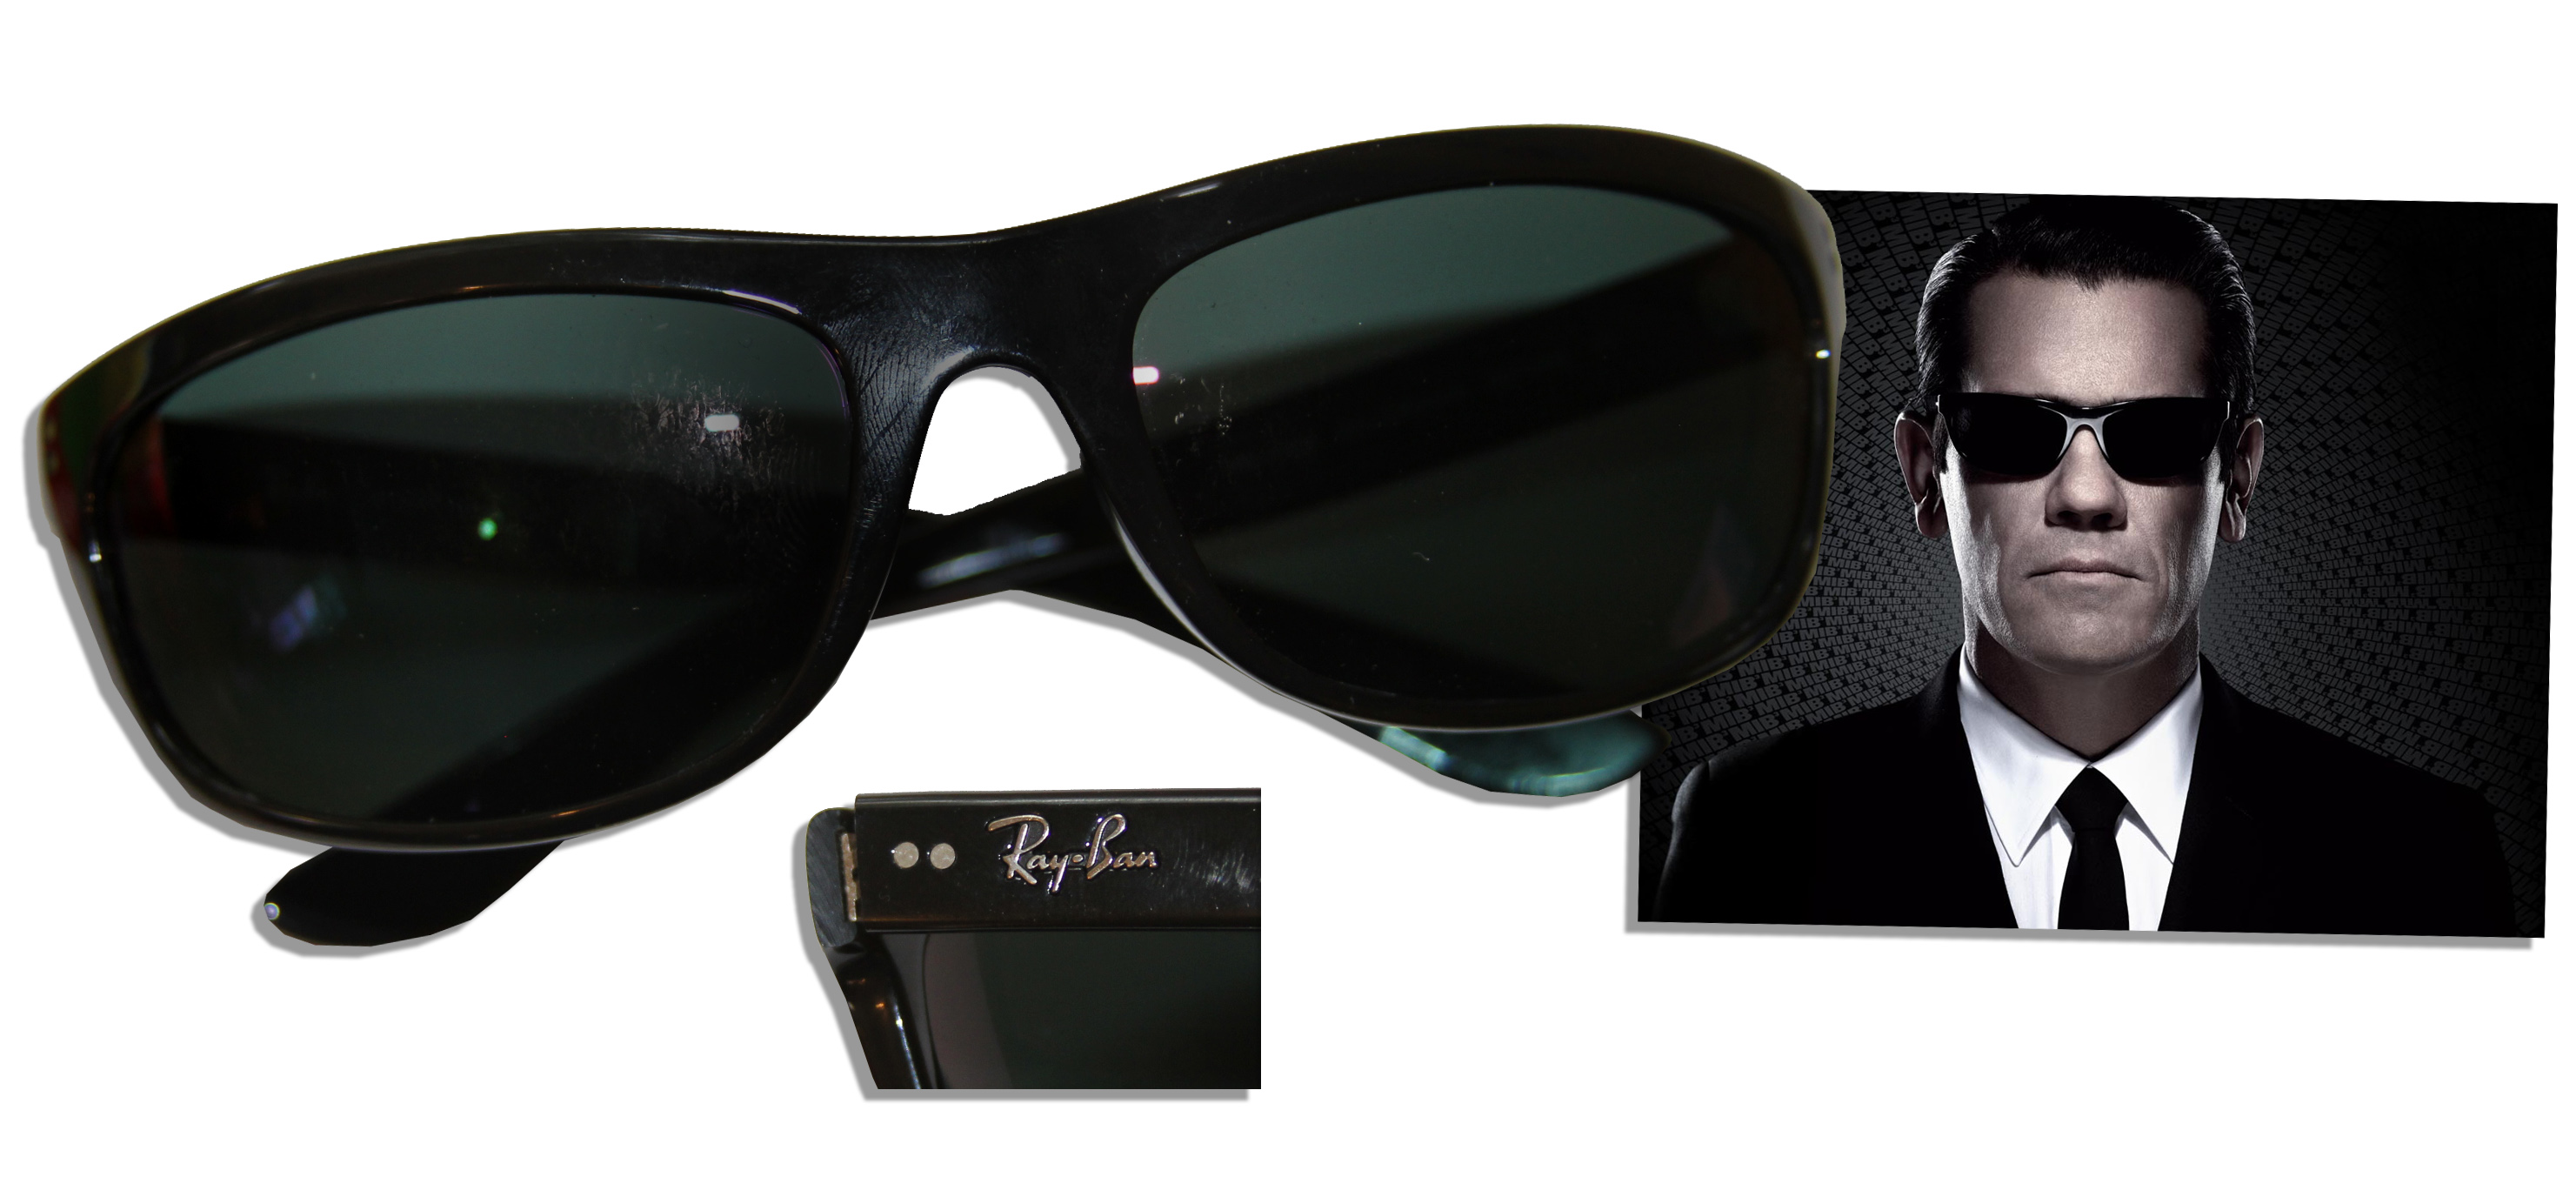 e359b062b7 Lot Detail -   Men in Black 3   Ray Ban Sunglasses Used by Josh Brolin